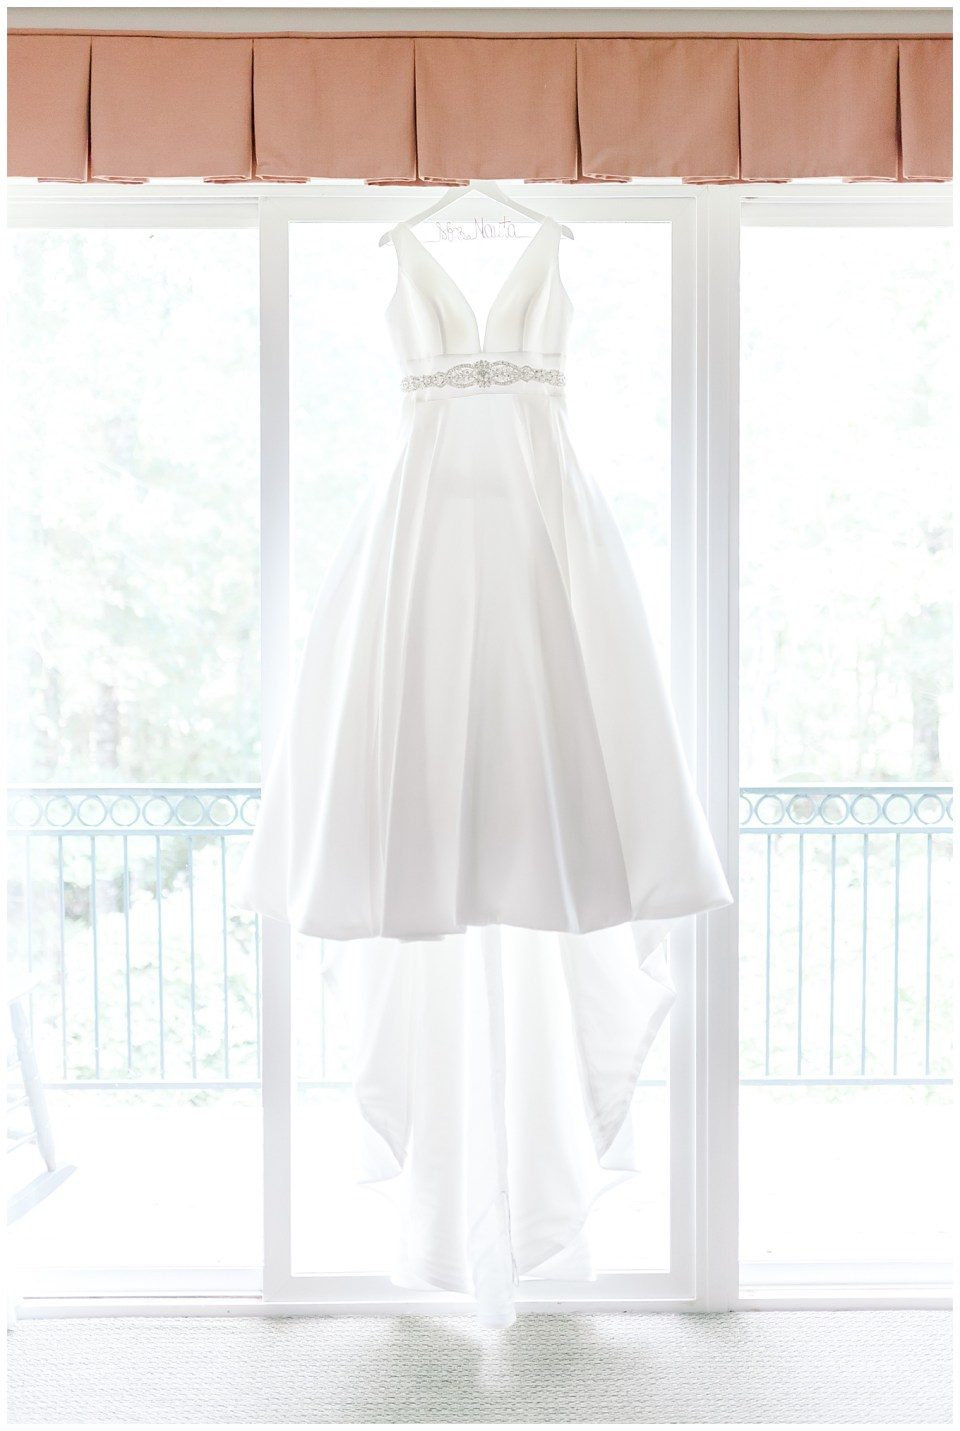 brides dress hung up with custom hanger